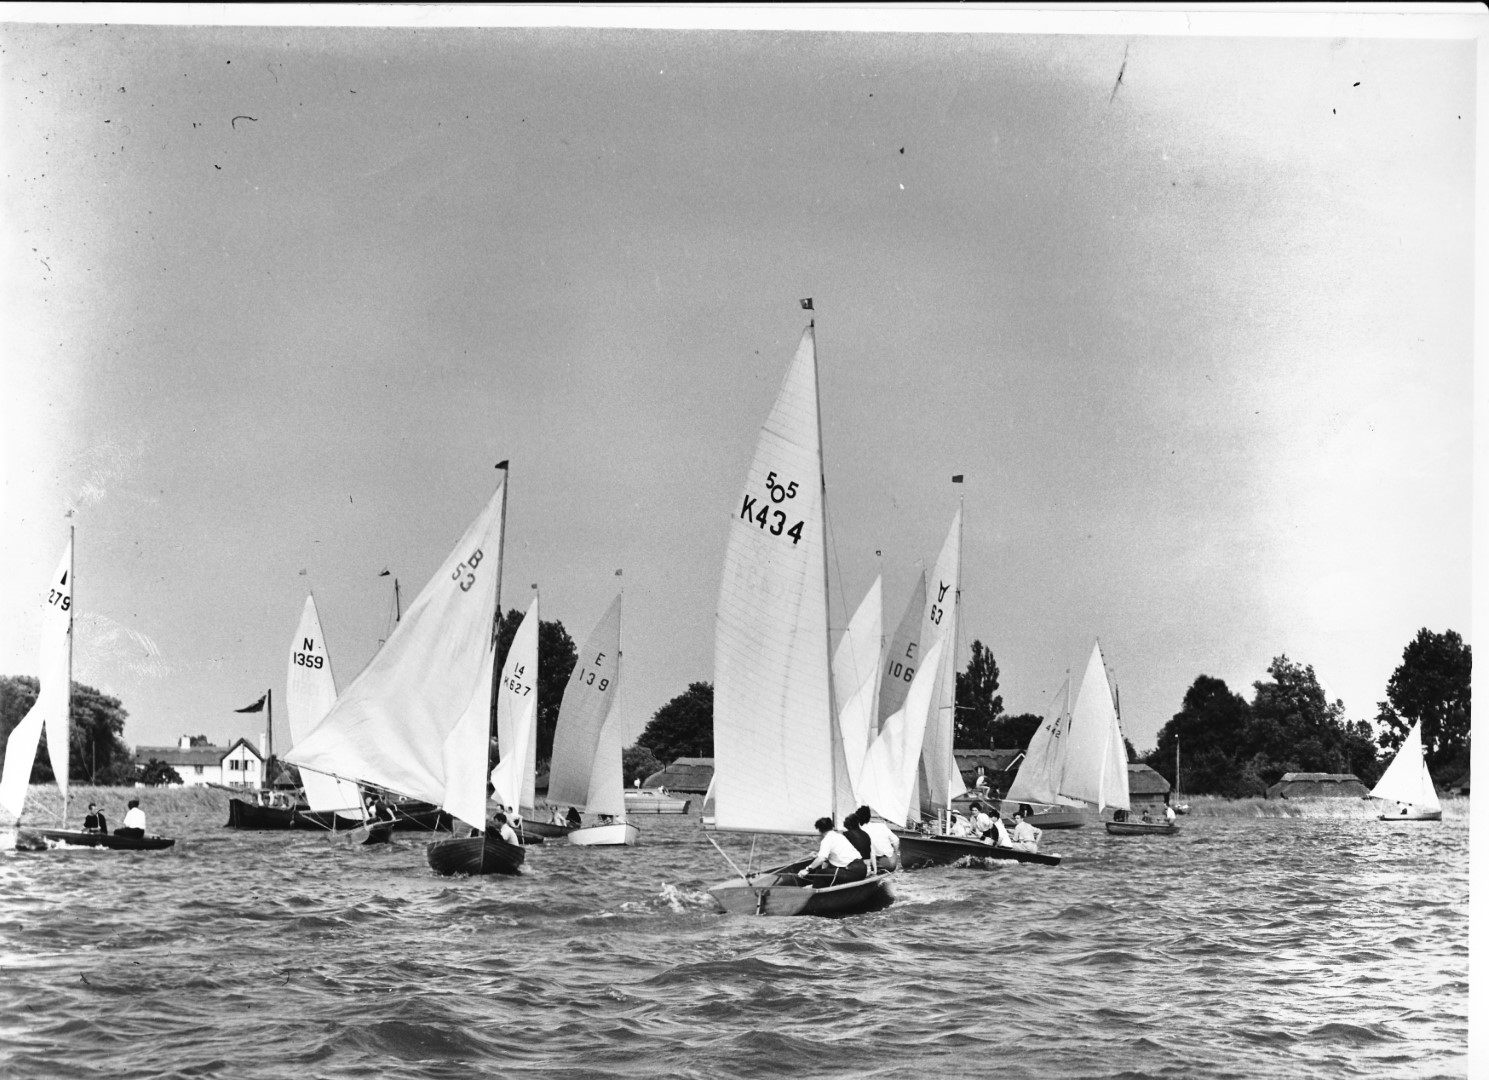 Hickling Regatta (date unknown)